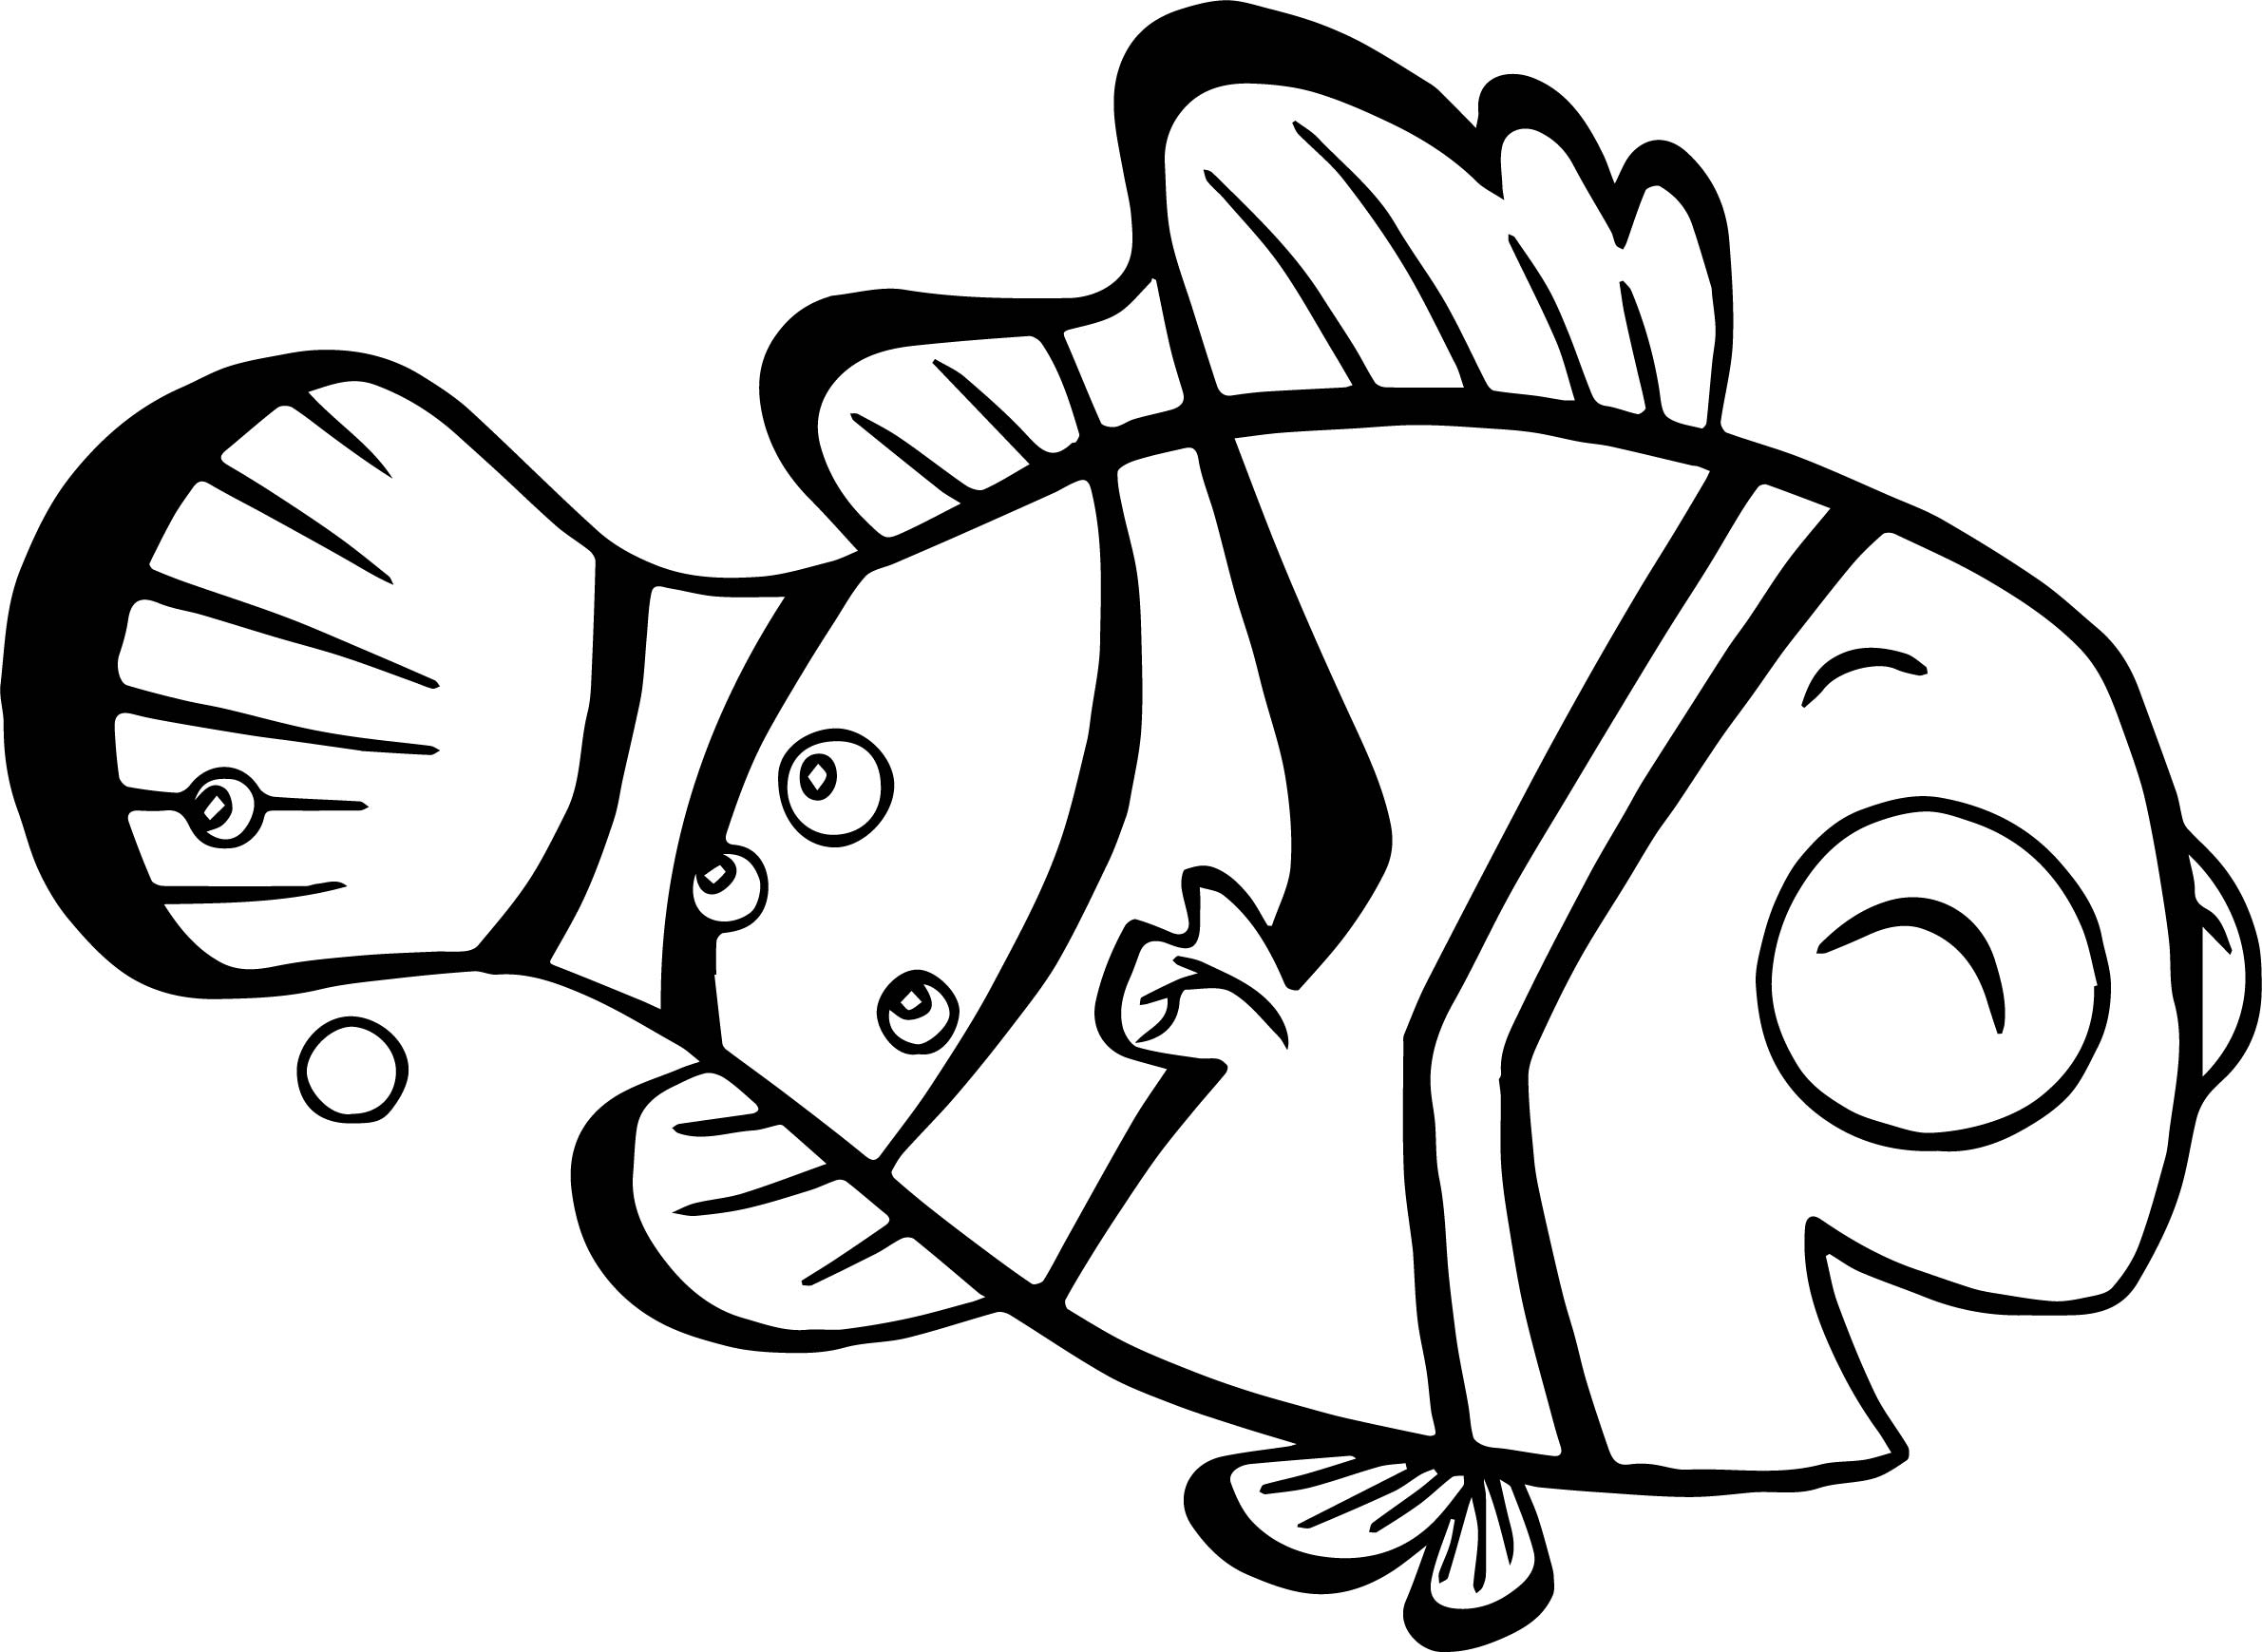 2381x1739 Disney Finding Nemo Coloring Pages Wecoloringpage